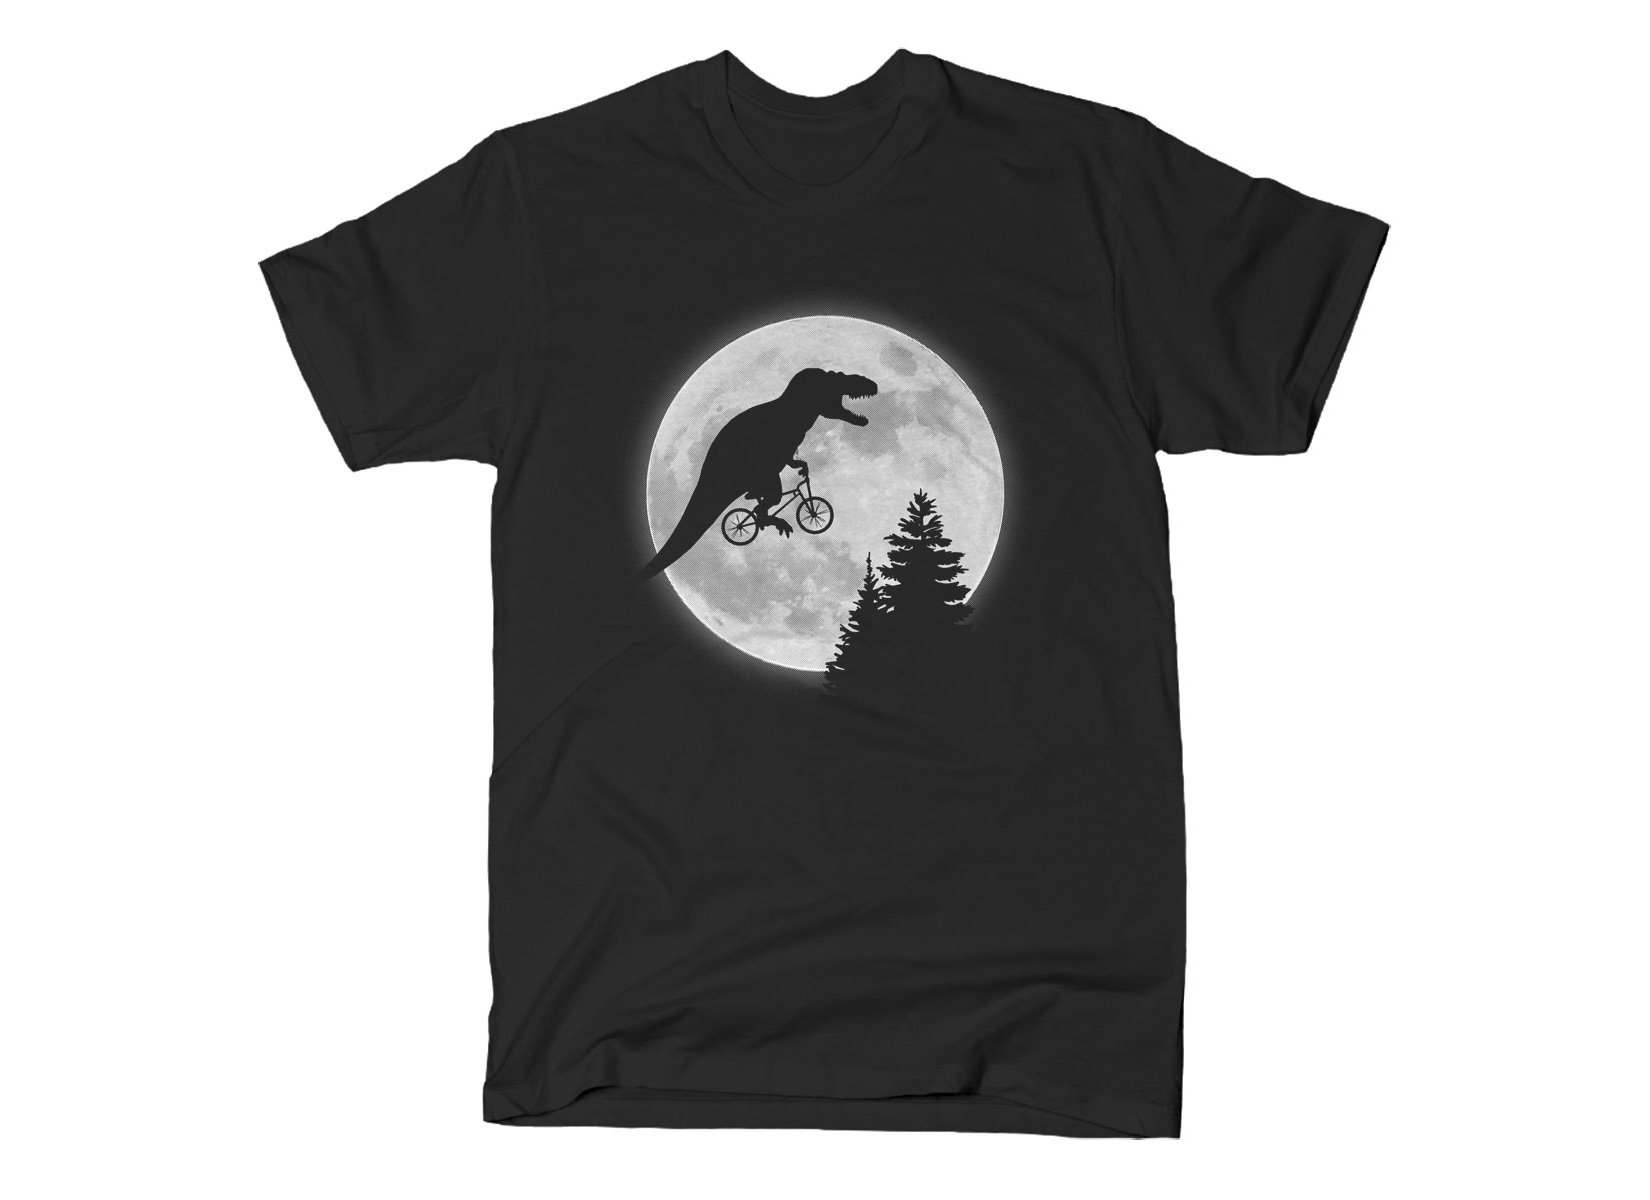 T-Rex Moon on Mens T-Shirt